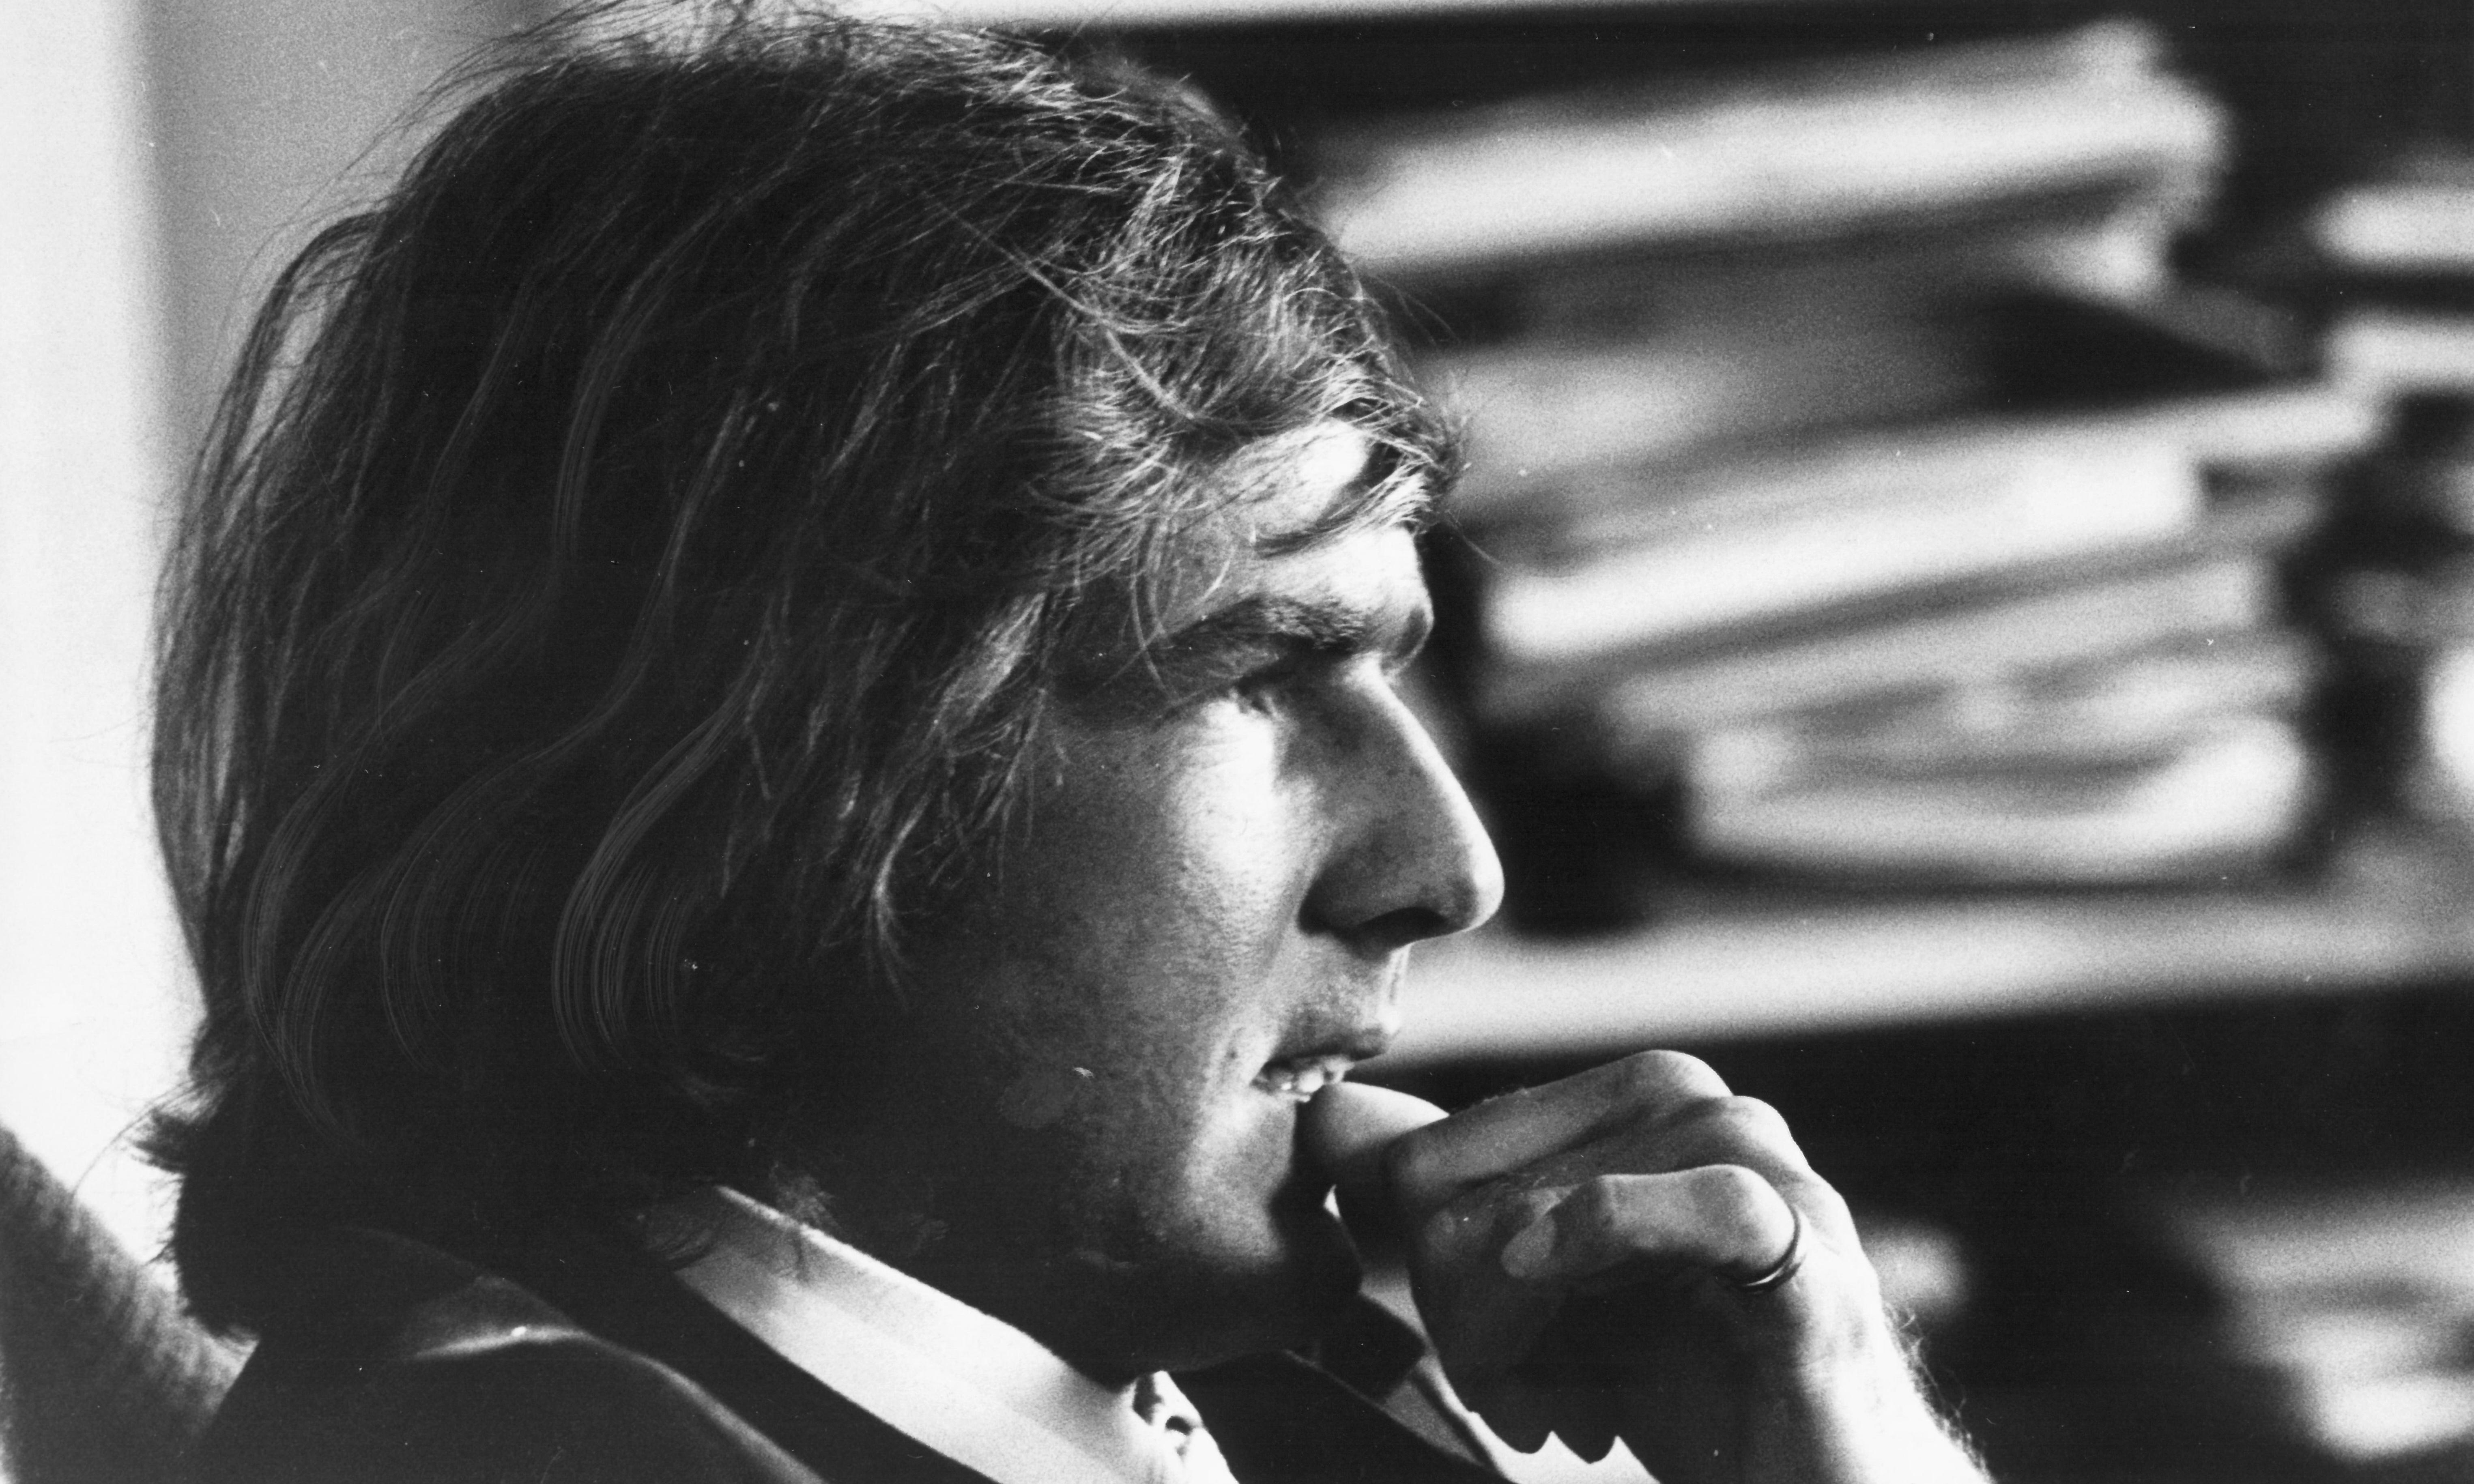 John Tavener's The Whale reviewed - archive, October 12 October 1970